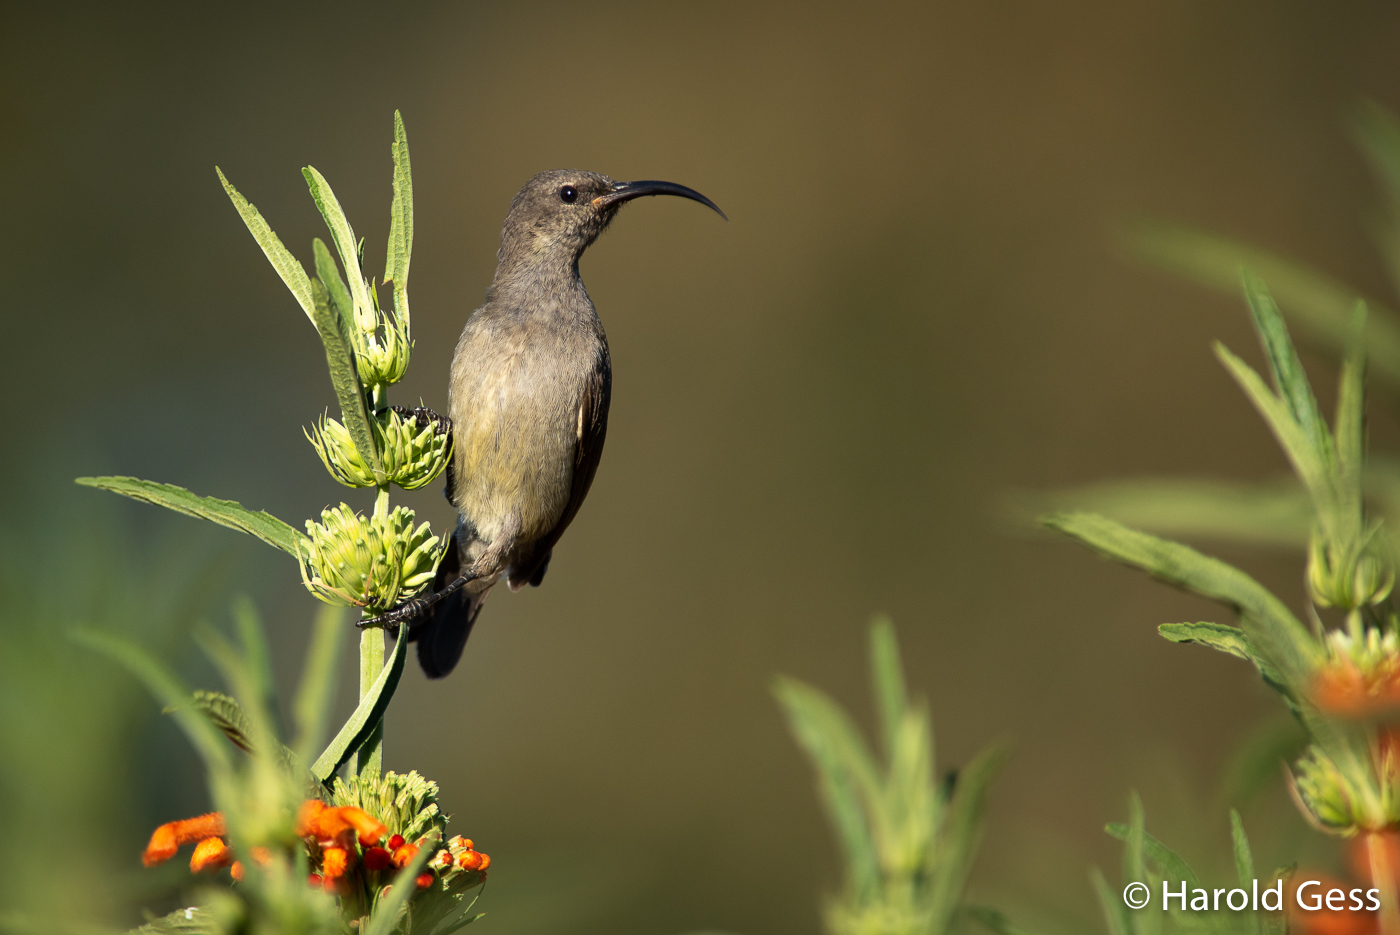 Greater Double-collared Sunbird, Cinnyris afer, female, Grahamstown, Eastern Cape